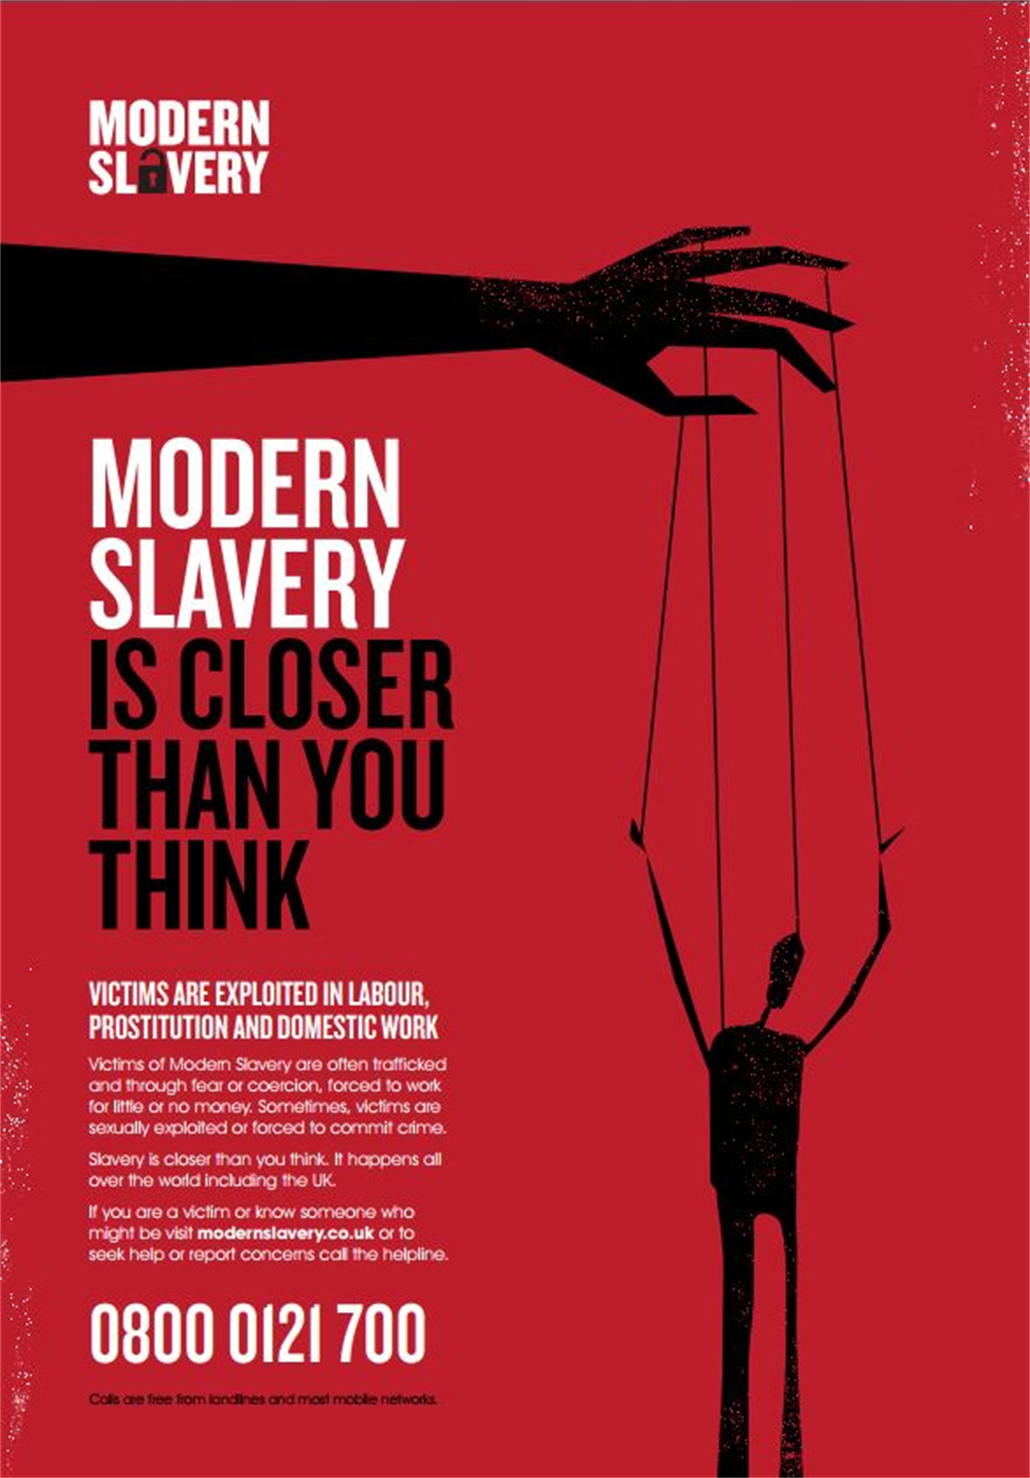 Modern slavery is closer than you think.